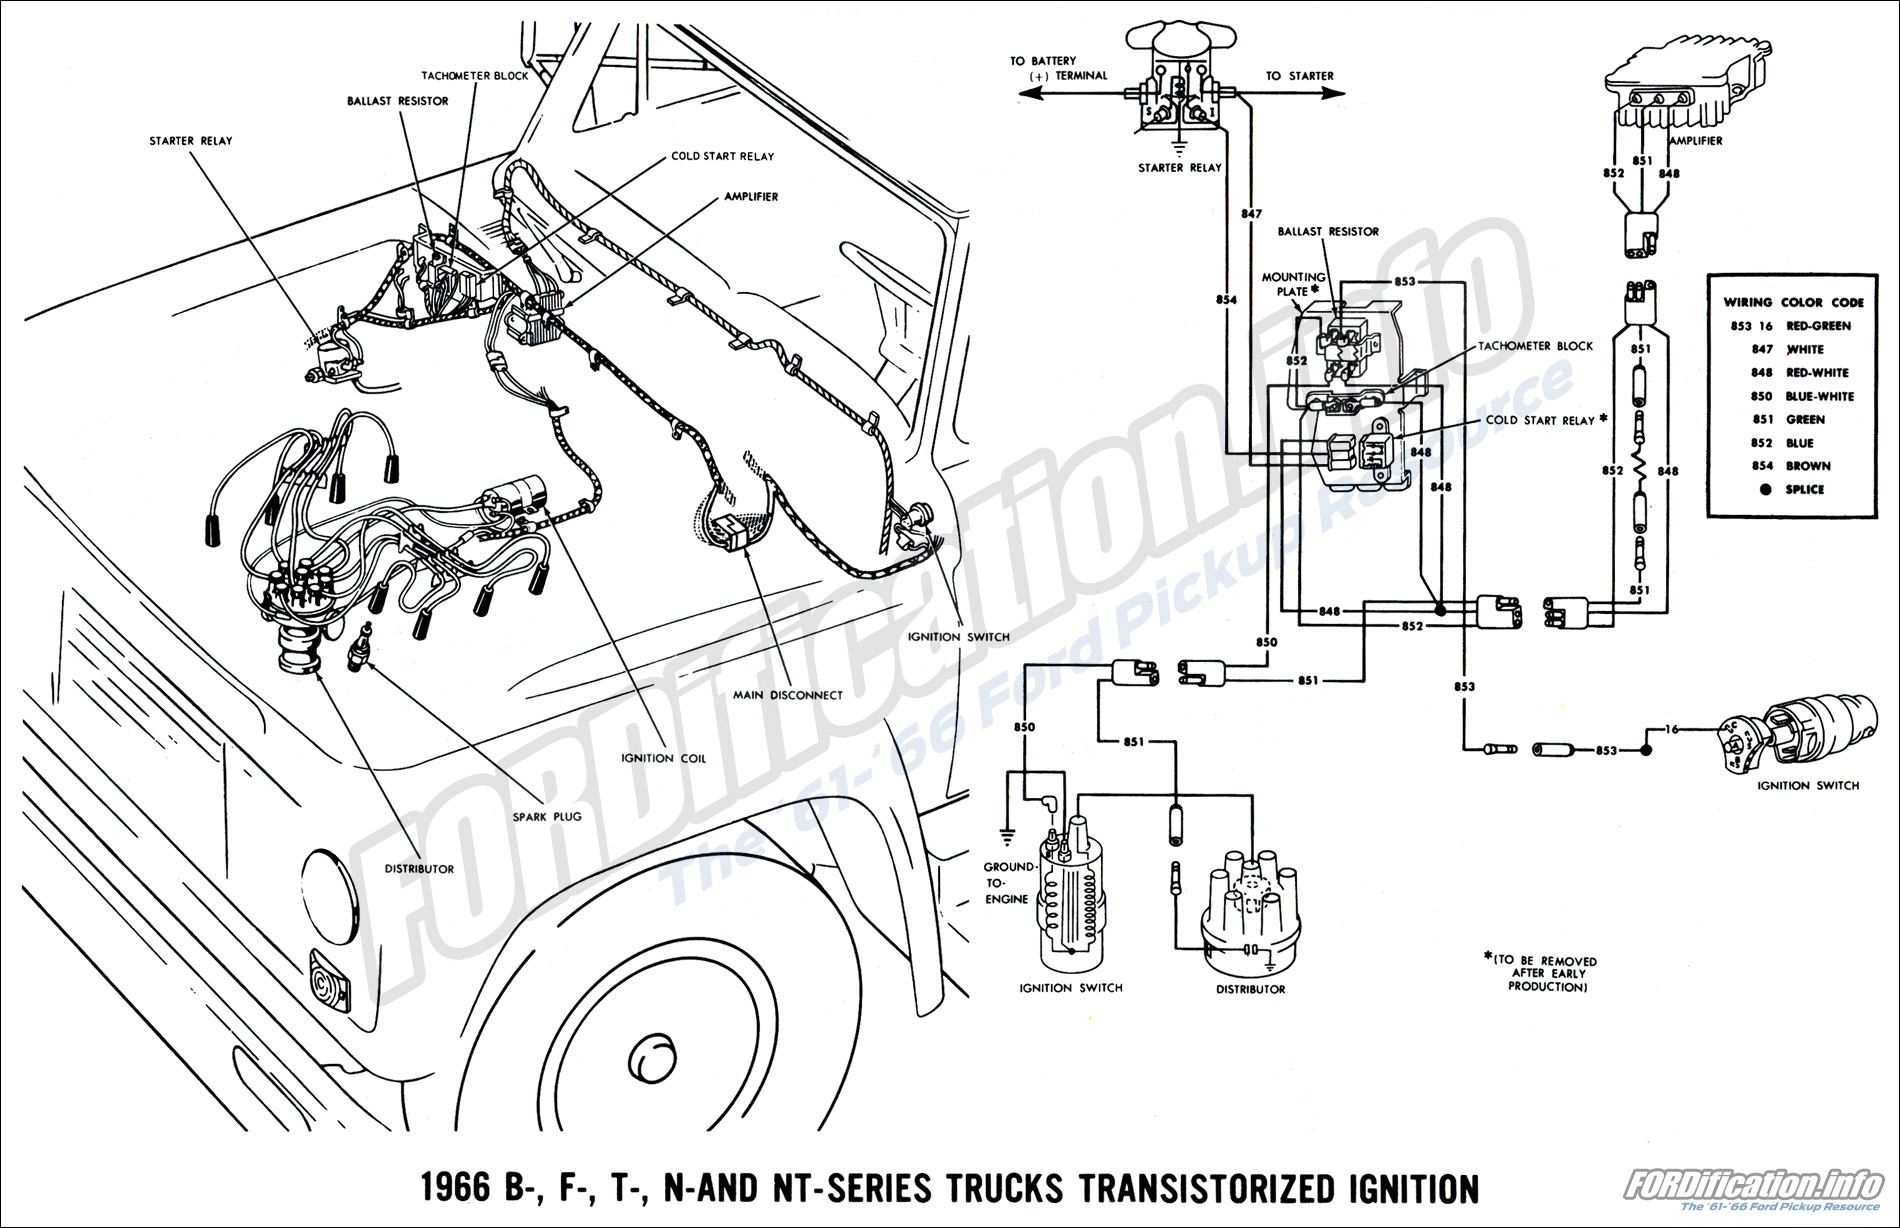 1954 F100 Wiring Diagram | Wiring Diagram A Wiring Diagram For Ford Pick Up on